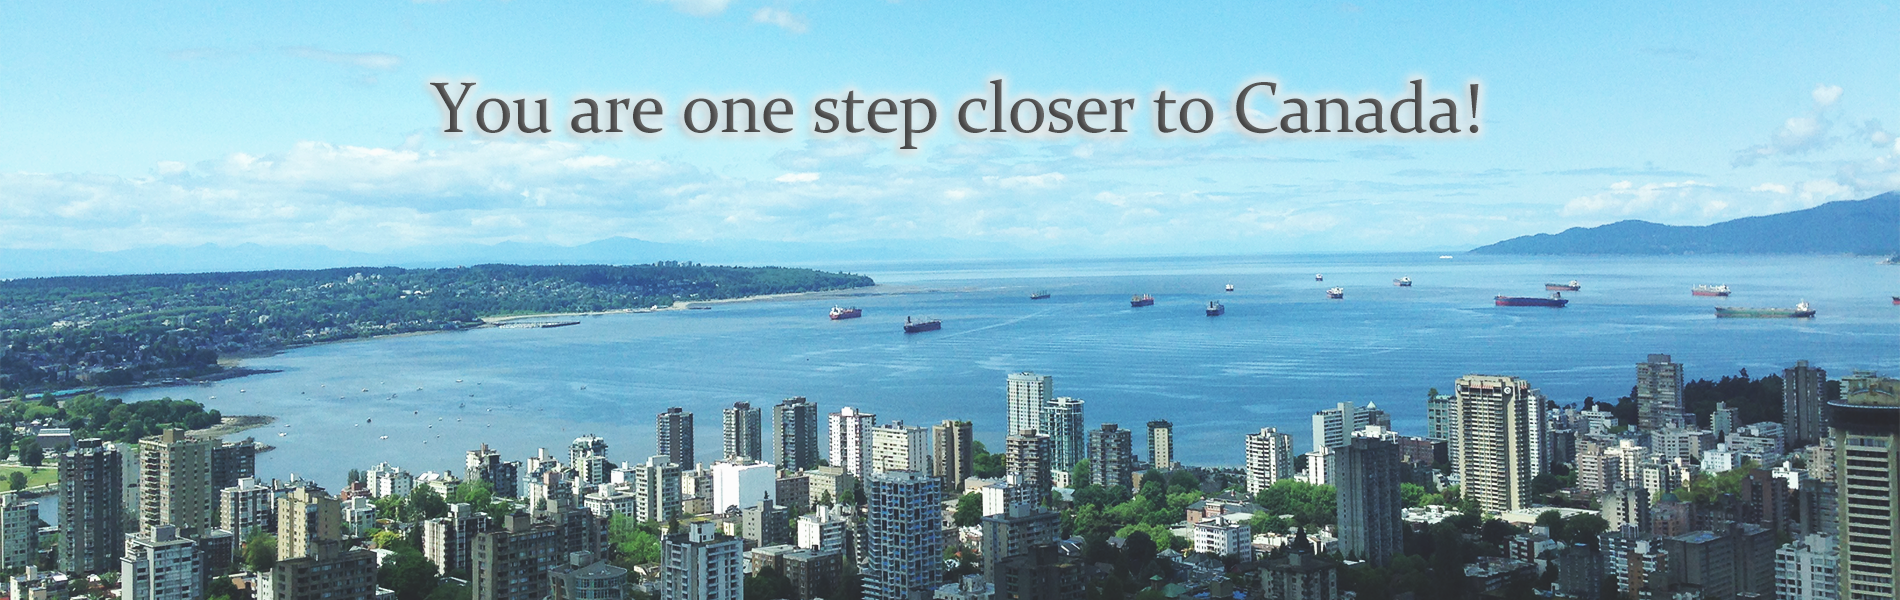 You are one step closer to Canada!